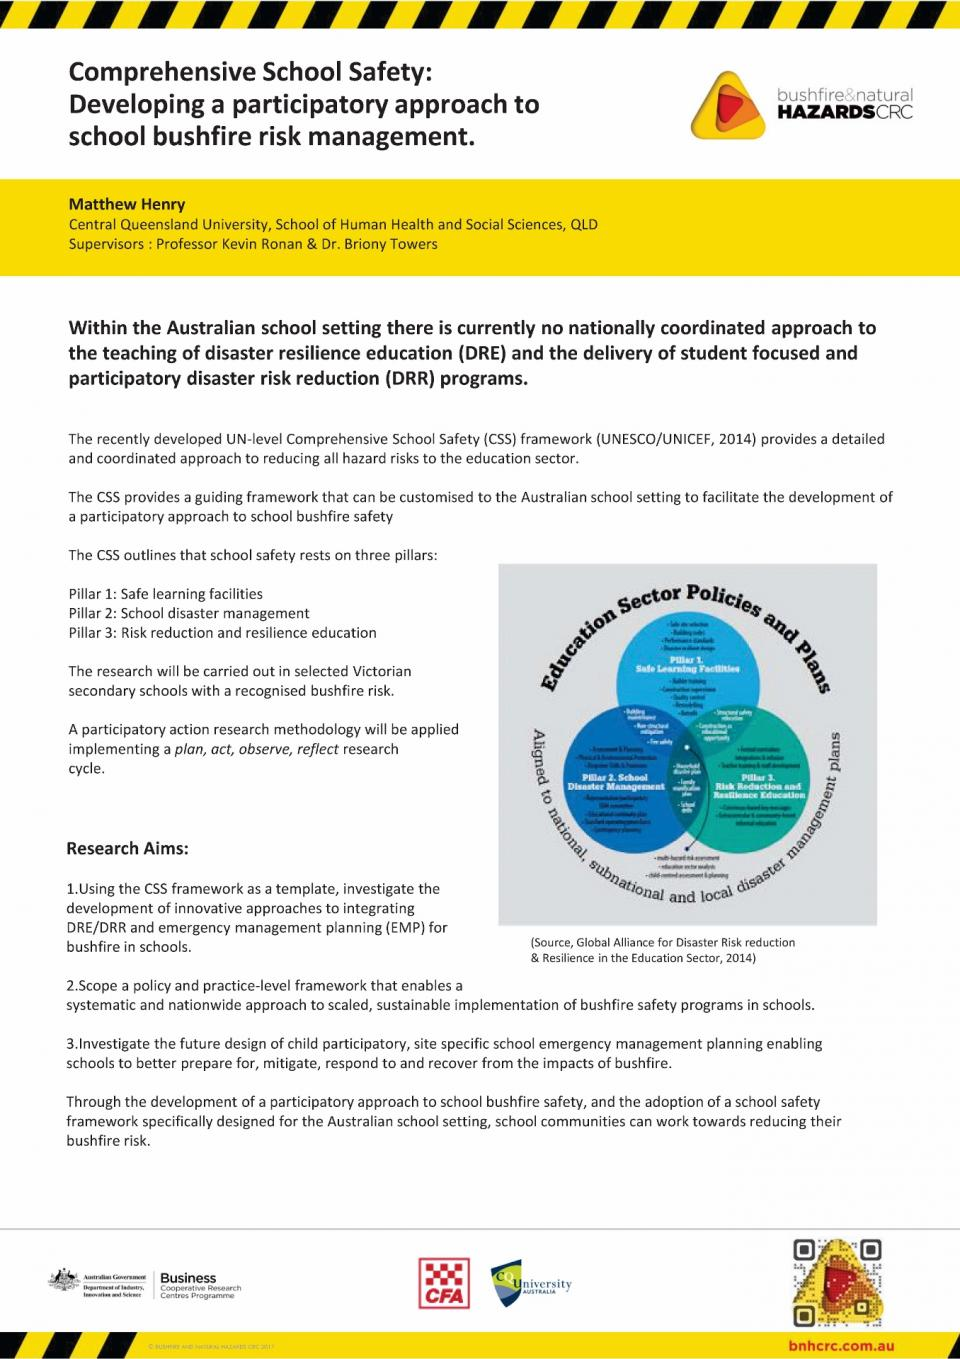 Comprehensive school safety: developing a participatory